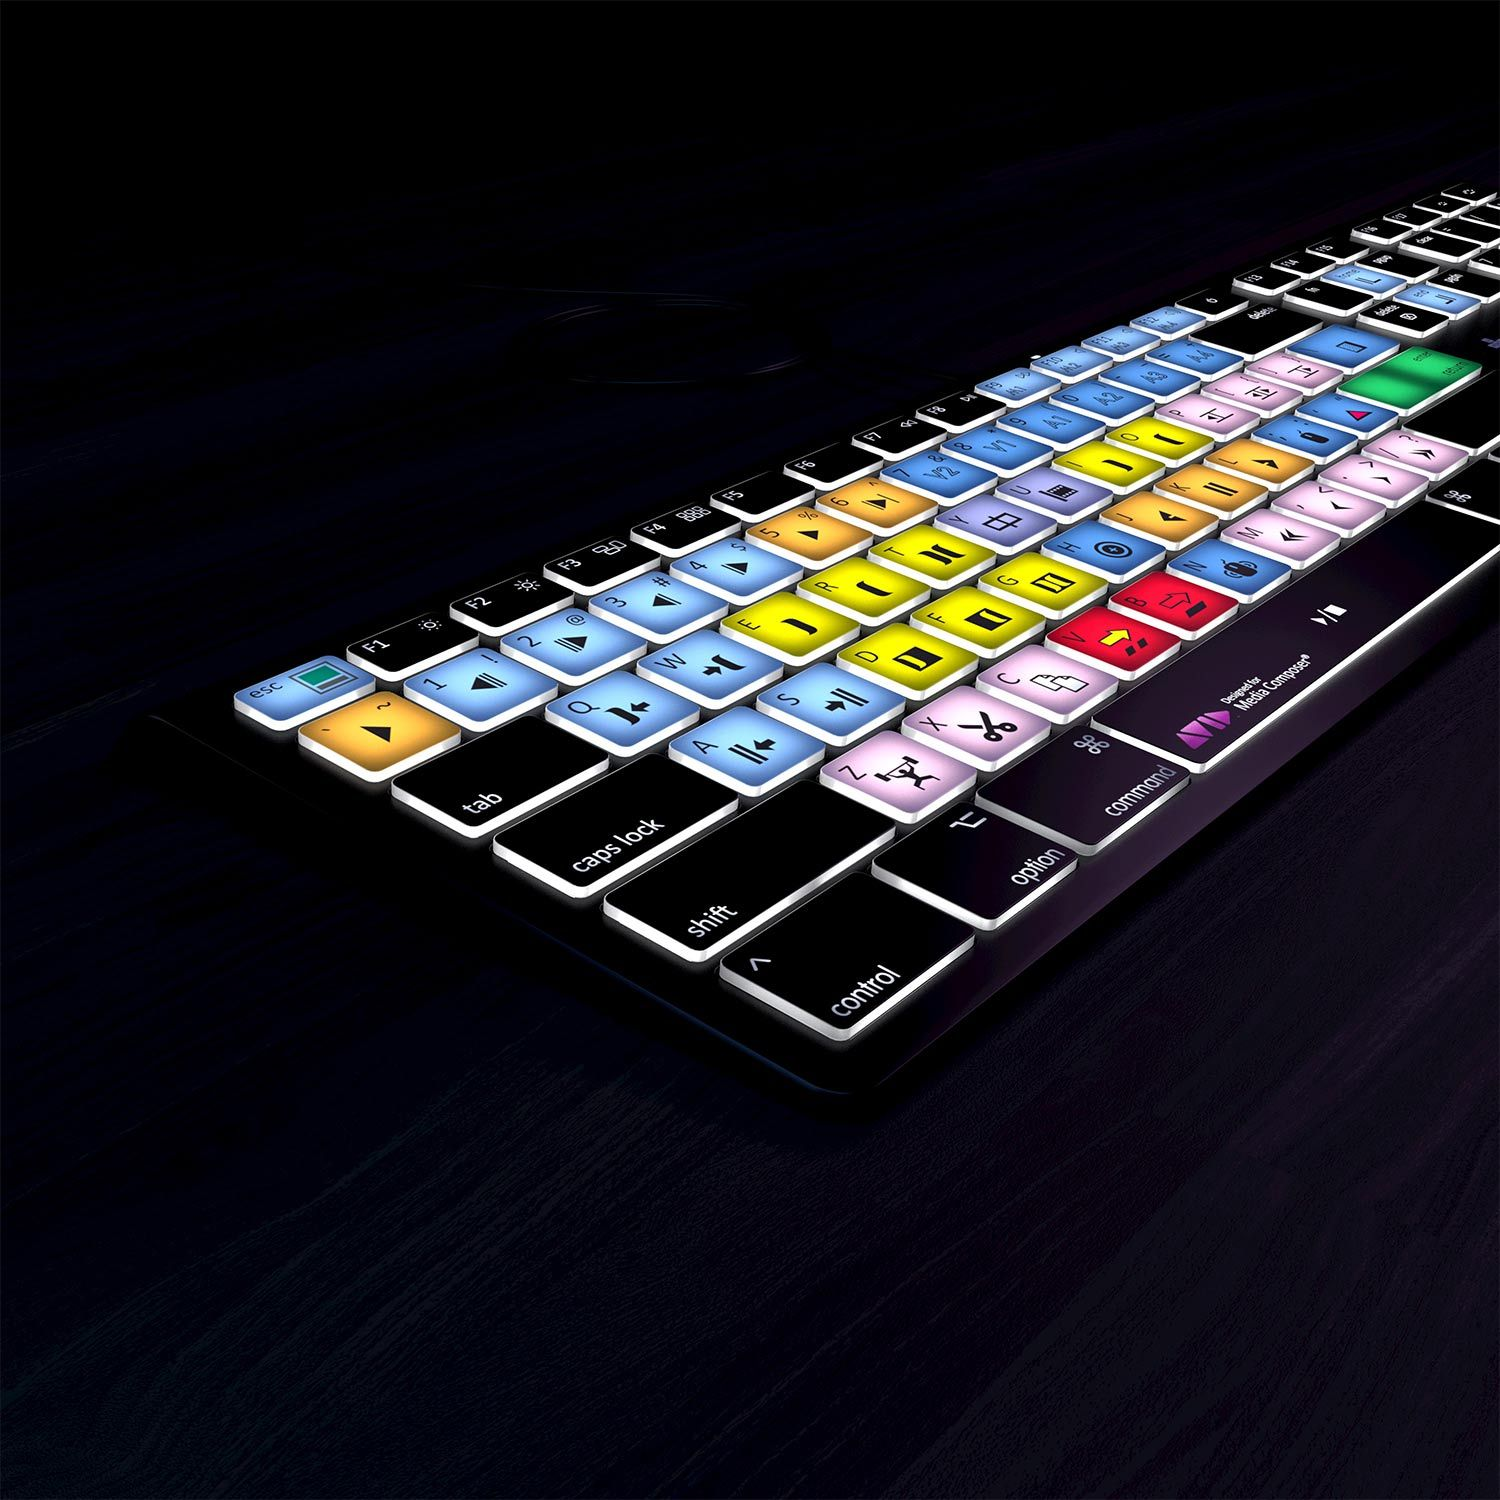 Avid Media Composer Keyboard - Backlit - For Mac or PC